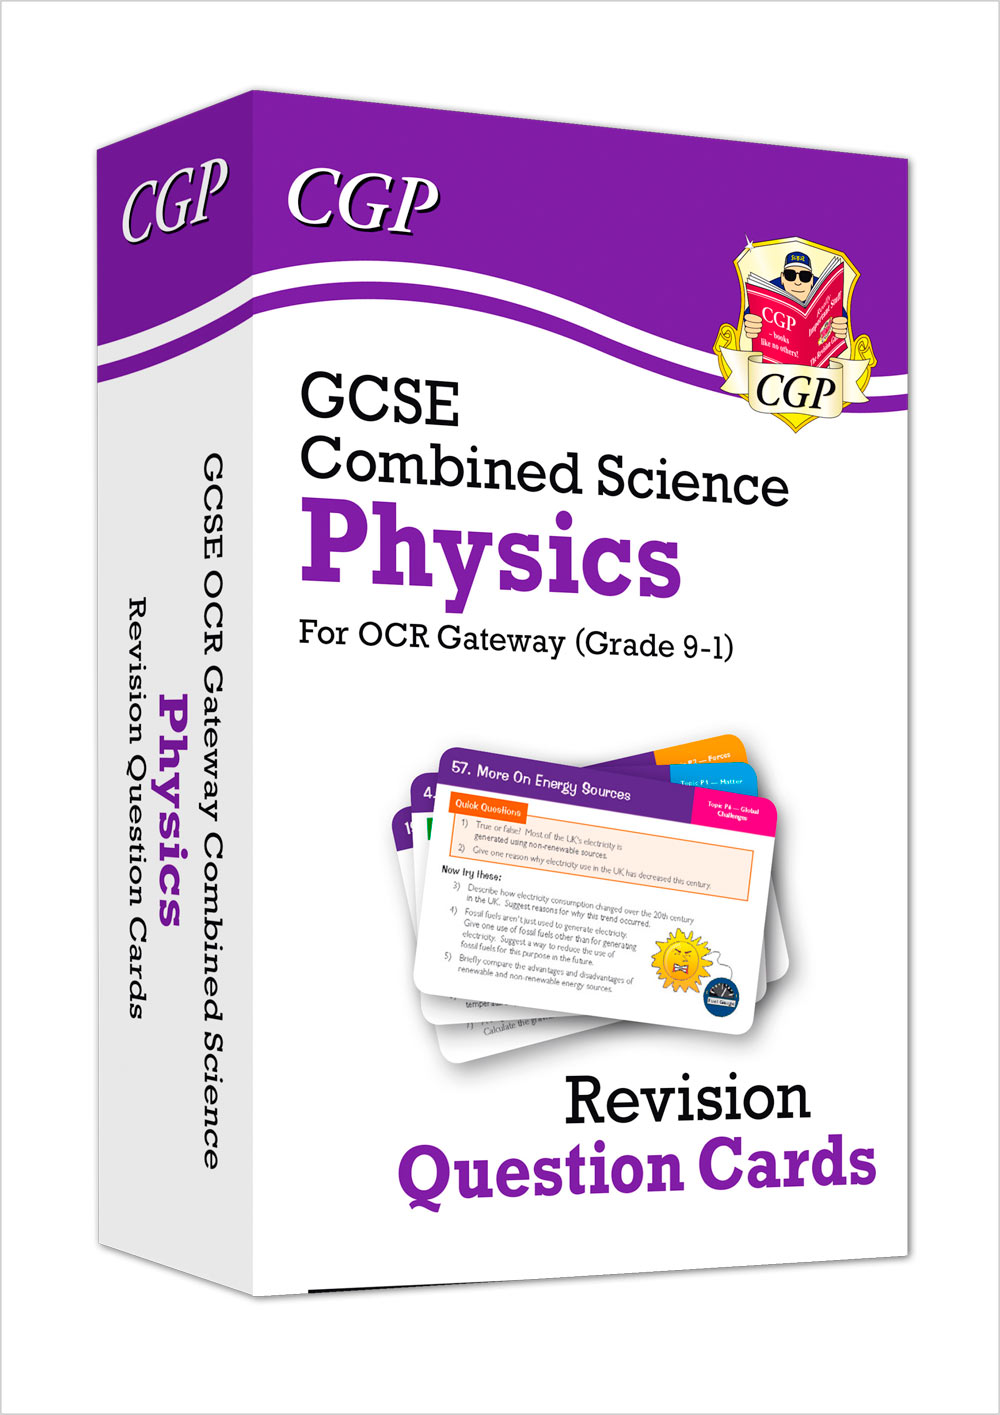 SCPRF41 - New 9-1 GCSE Combined Science: Physics OCR Gateway Revision Question Cards